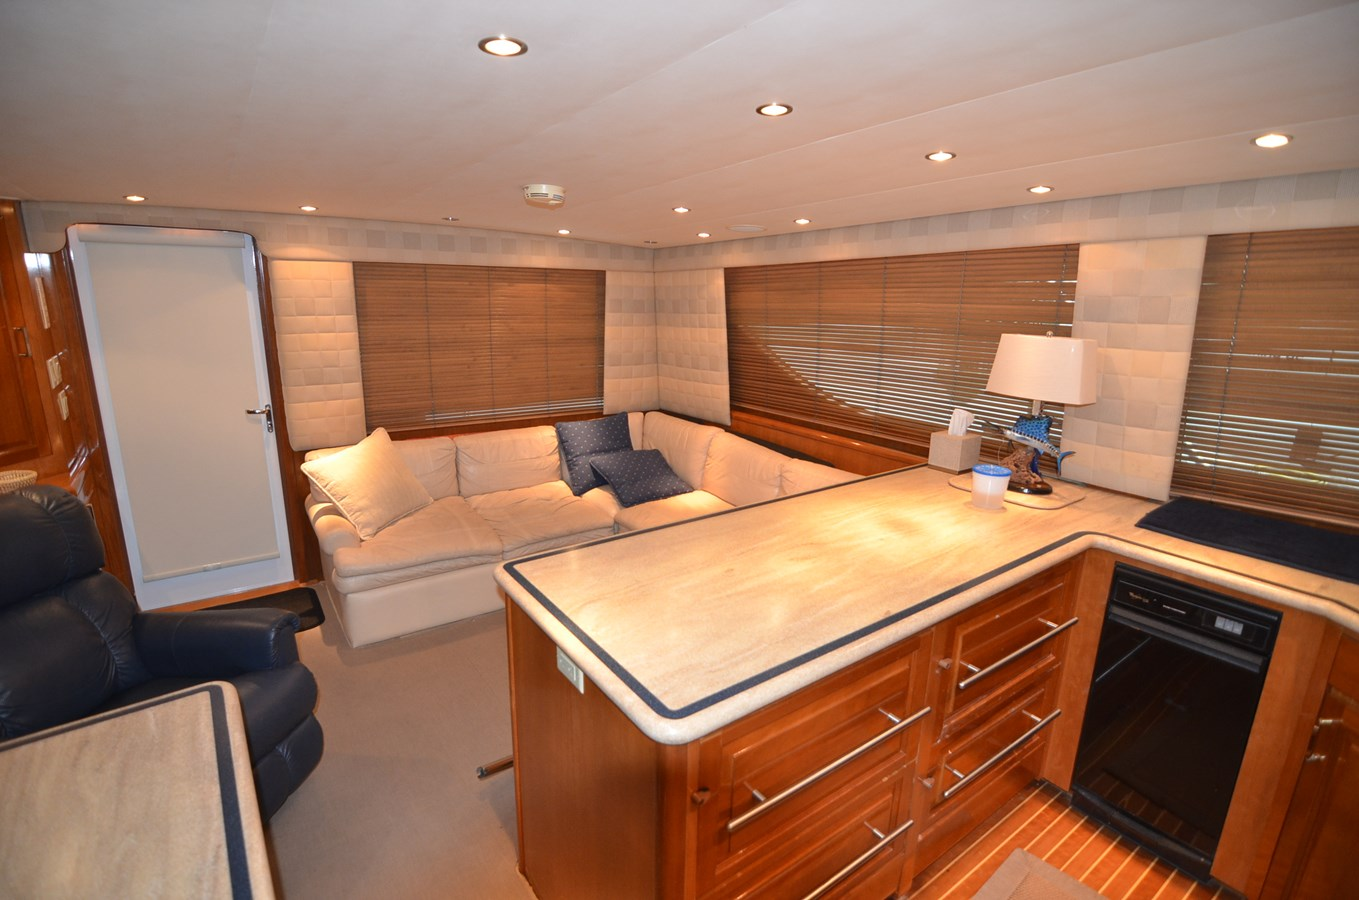 Galley - 55 HATTERAS For Sale